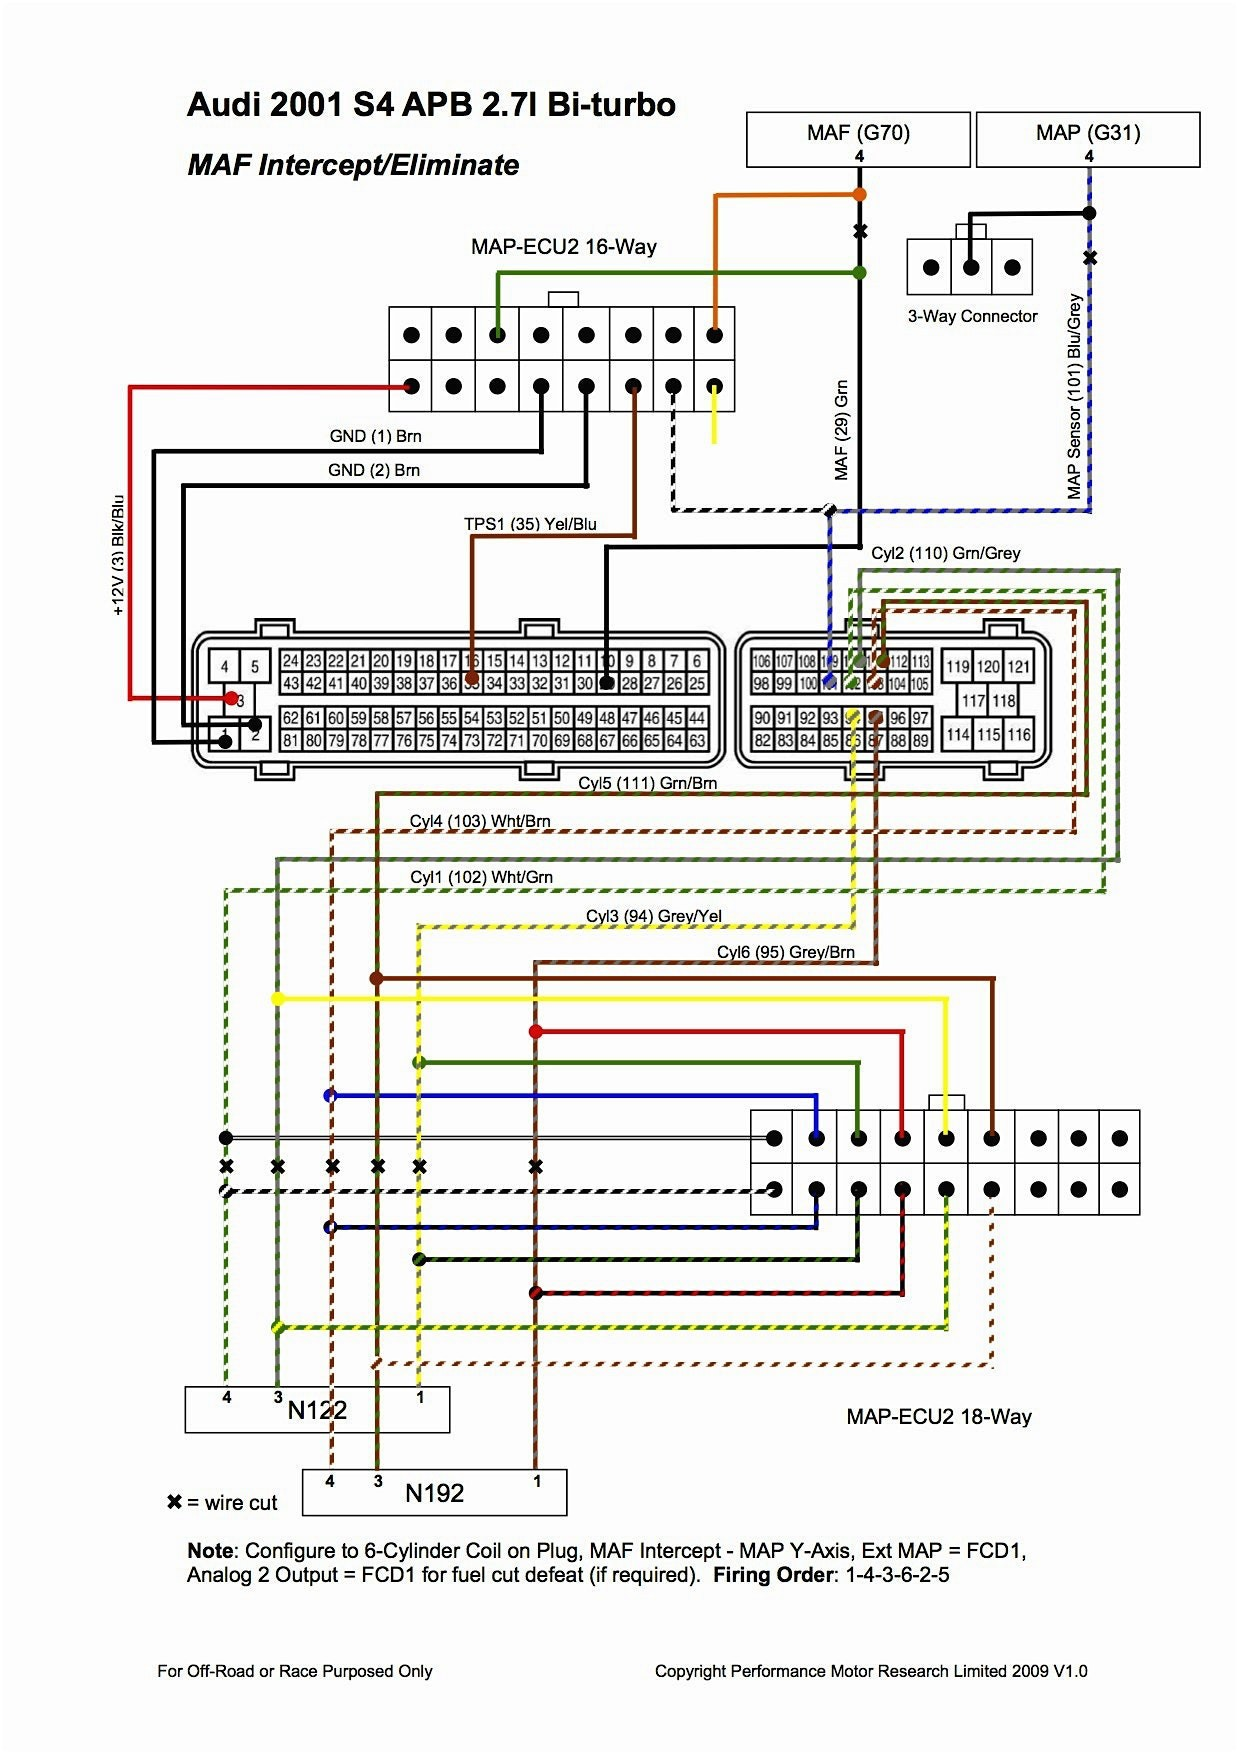 volkswagen speakers wiring diagram - data wiring bblank topic-abnormal -  topic-abnormal.fondazioneculturanoli.it  fondazione cultura noli